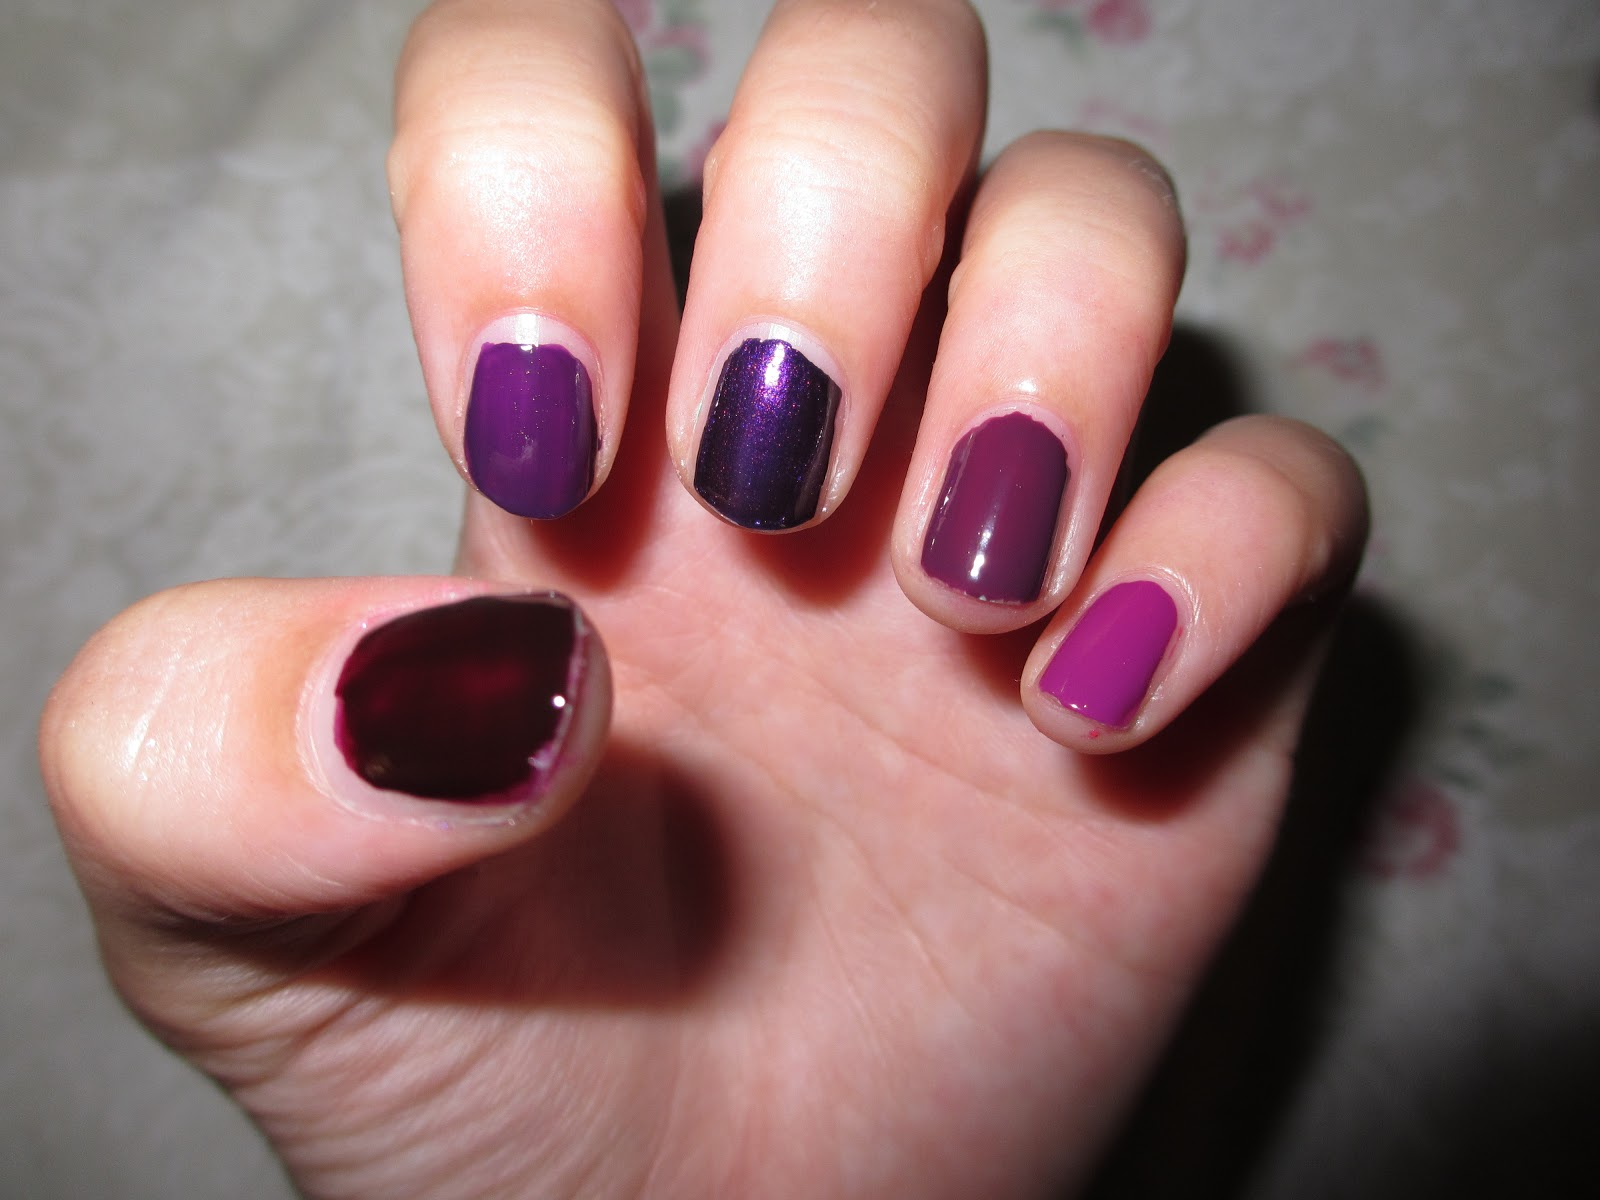 Other Wild Things: My nail polish collection